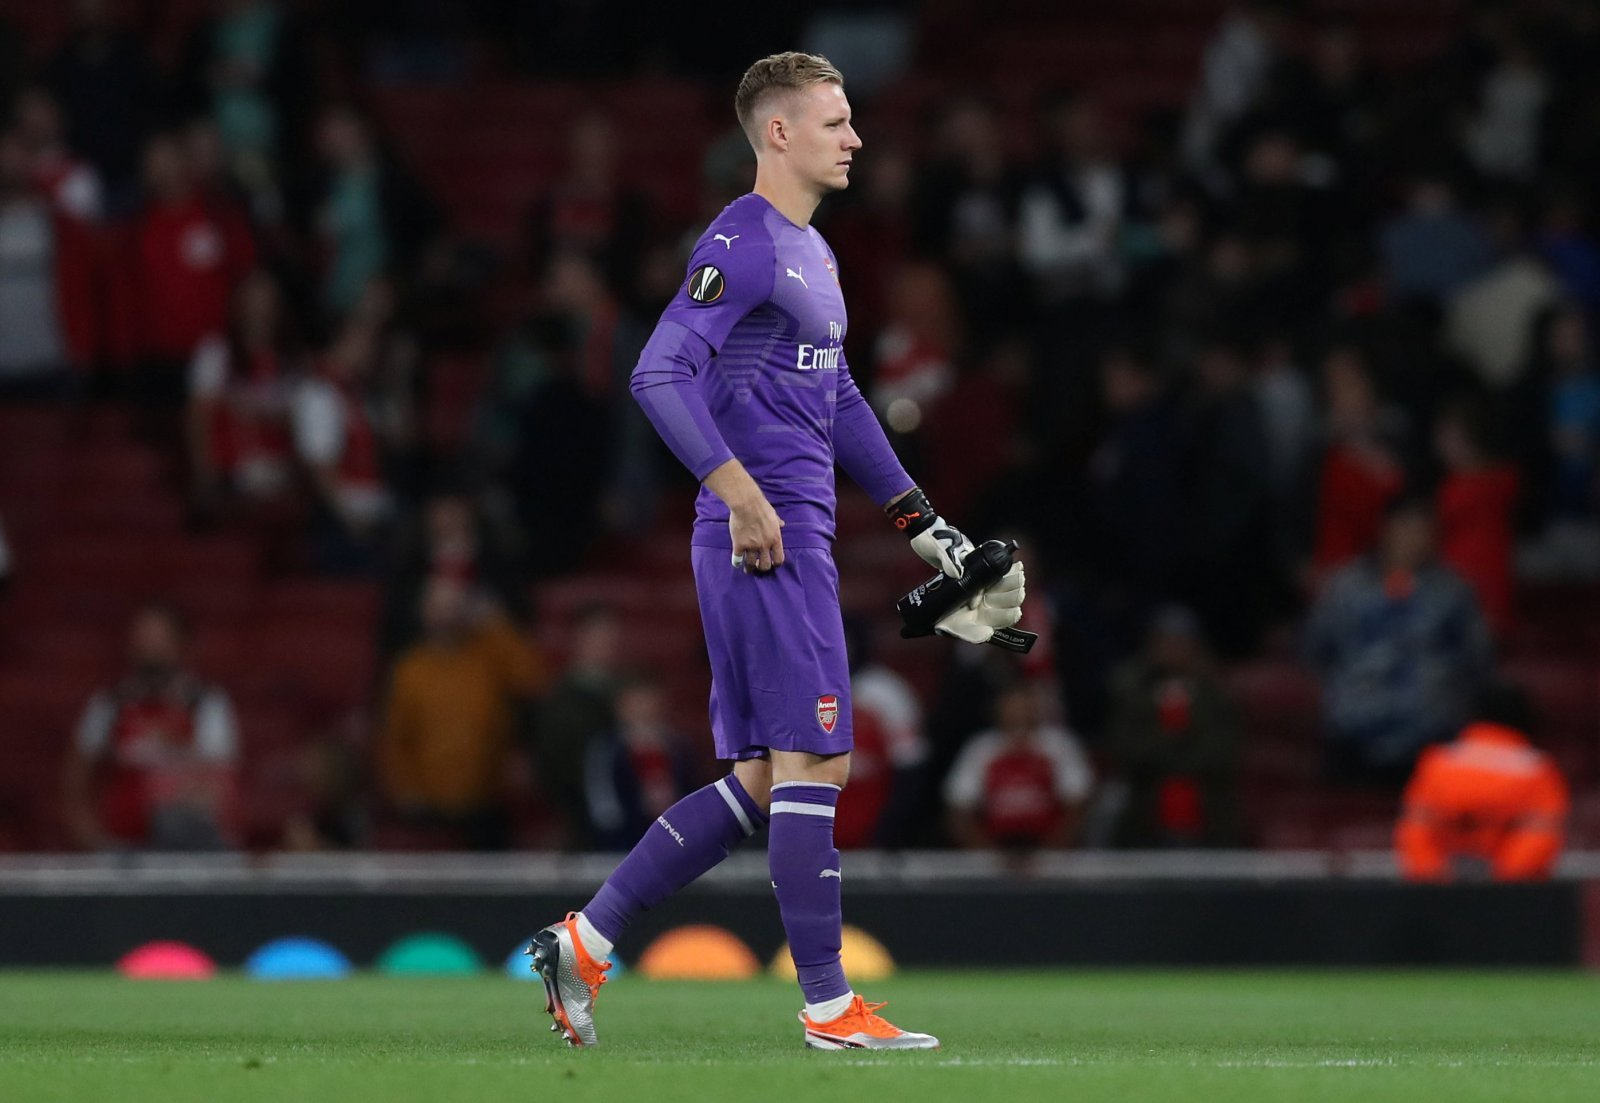 Arsenal fans were pleased with recent Emery decision to start Bernd Leno